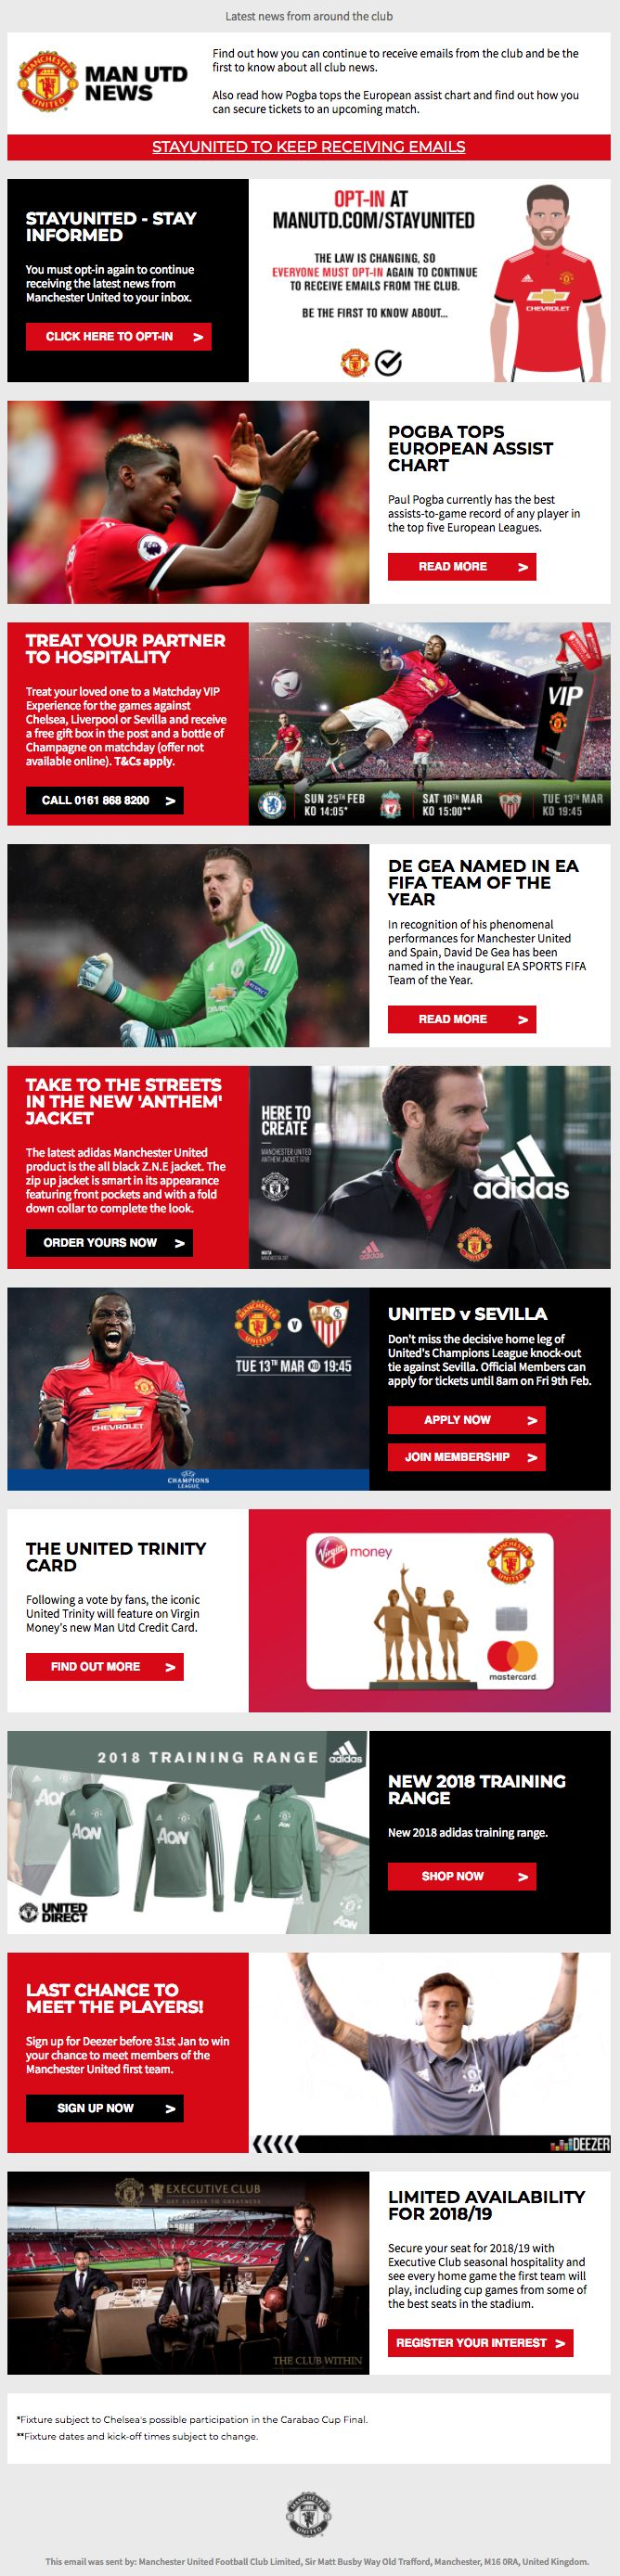 Manutd Are Getting Ready For Gdpr By Adding A Strong Opt In Call To Action At The Top Of Their Newsl Email Design Inspiration Email Marketing Design The Unit